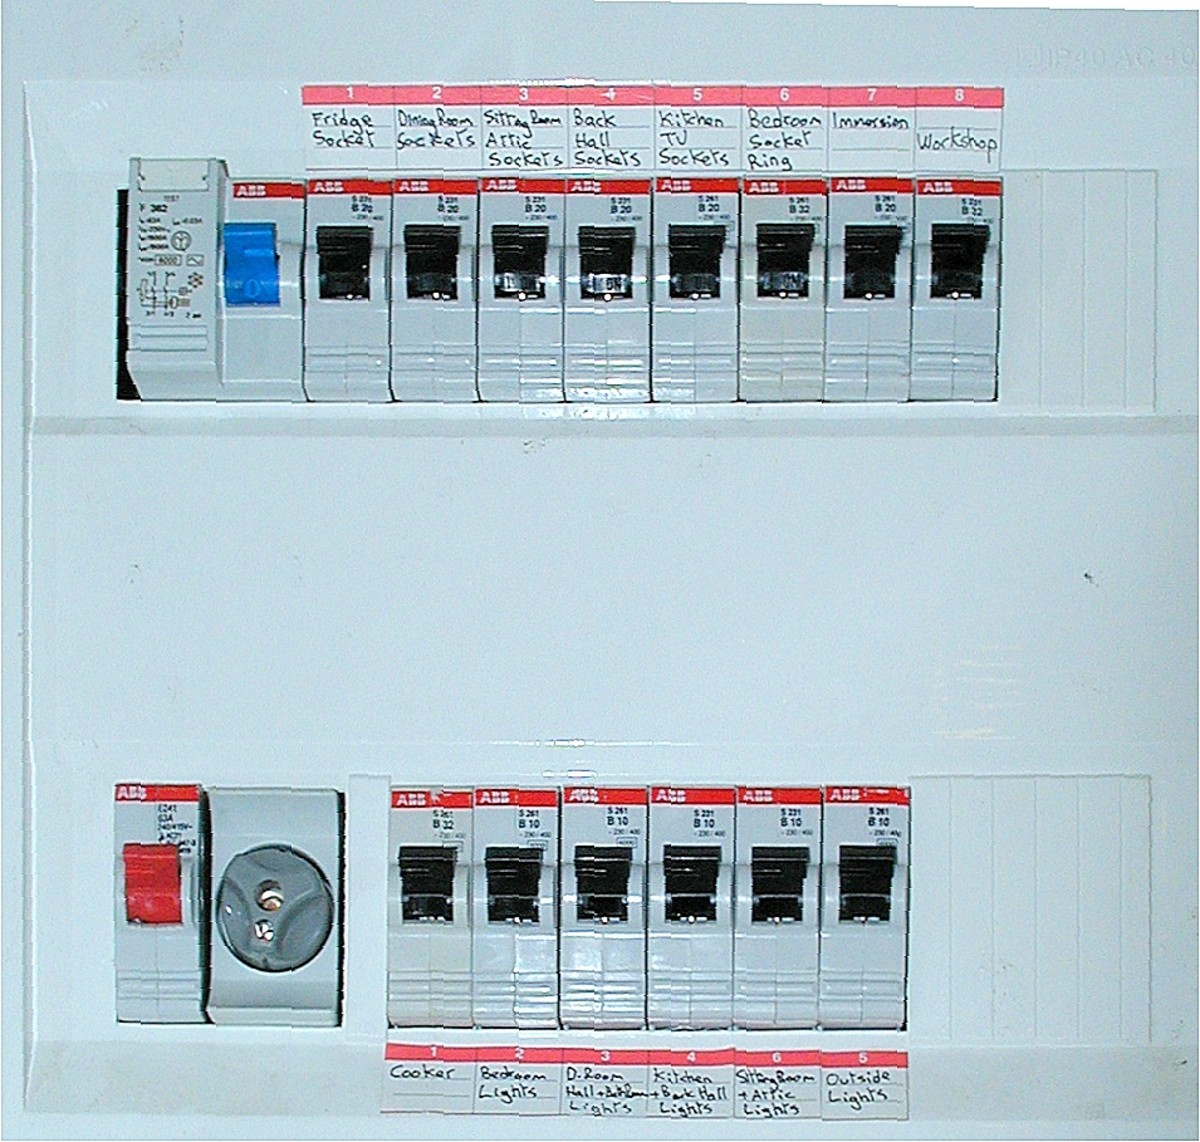 Circuit Breakers Tripping: What Causes Electrical Faults?